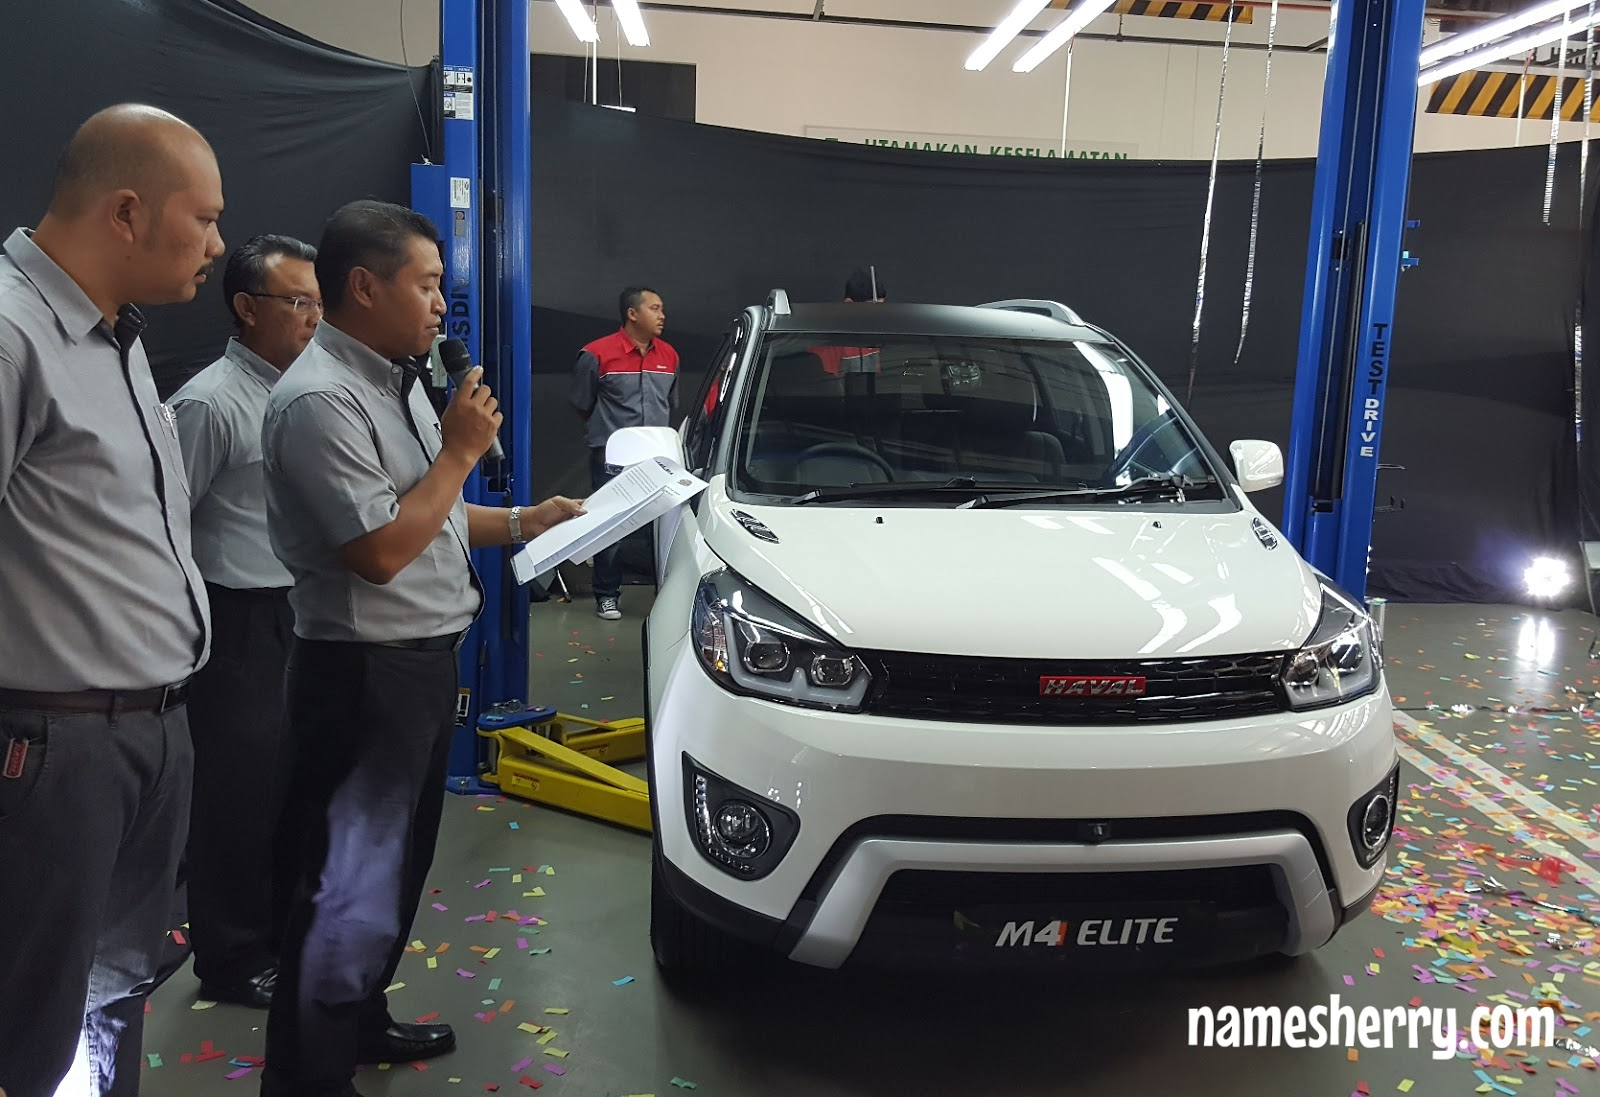 Namesherry Soft Launch Of M4 Elite And Great Wall Motors Gwm